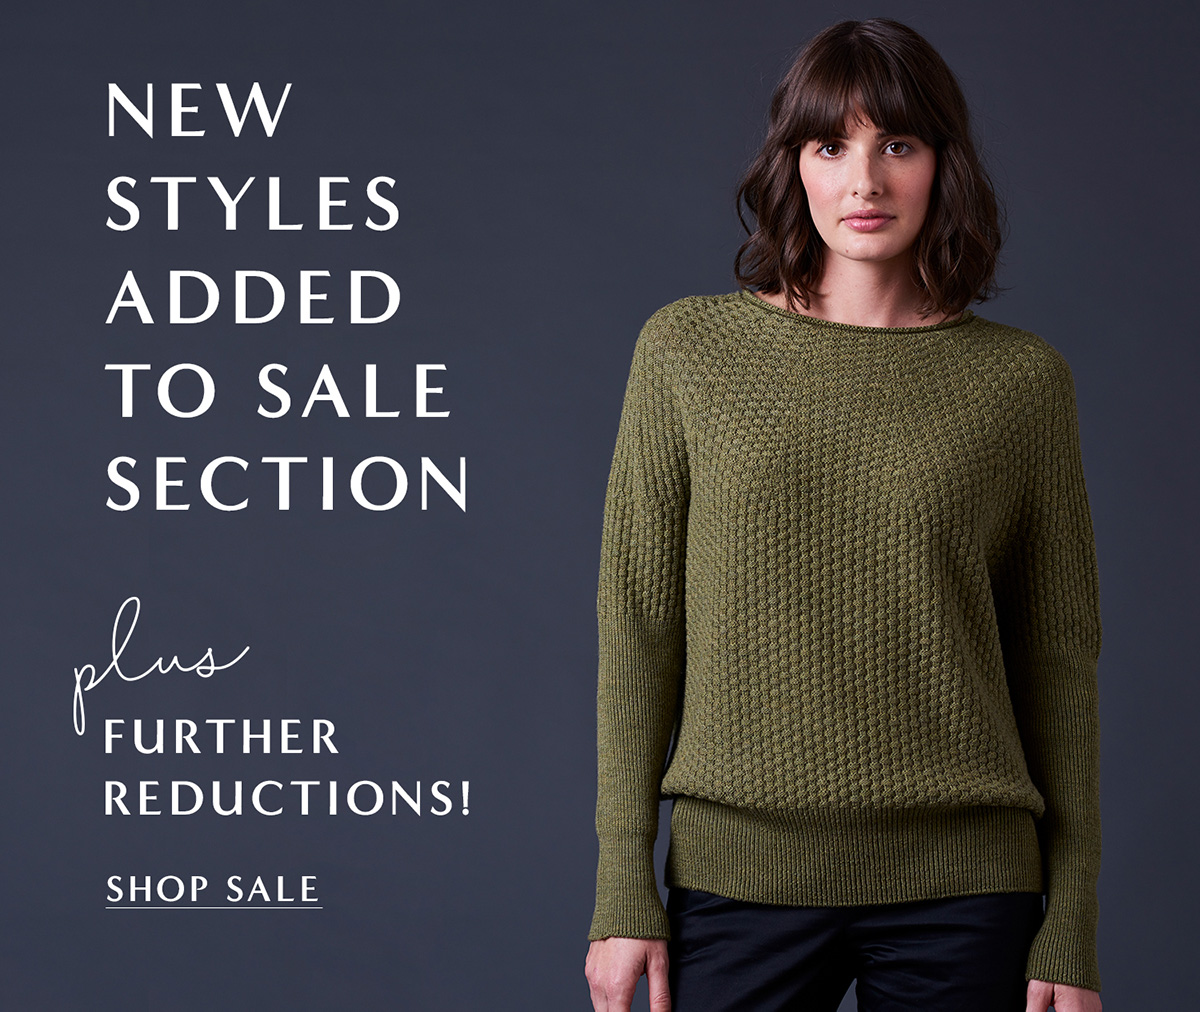 new styles added to sale!